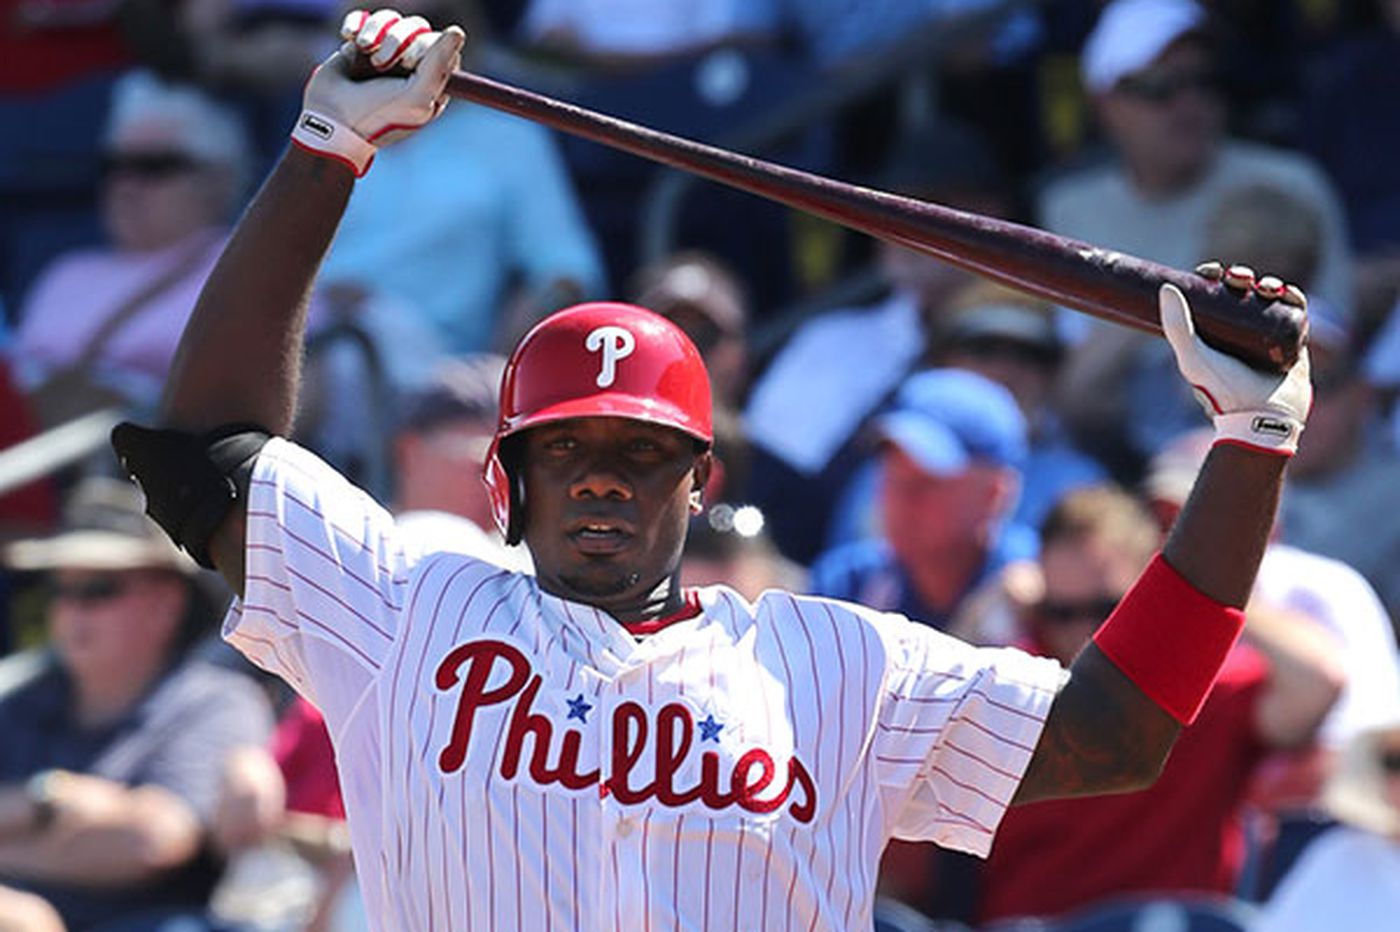 Phillies' Howard wallops his first HR of spring